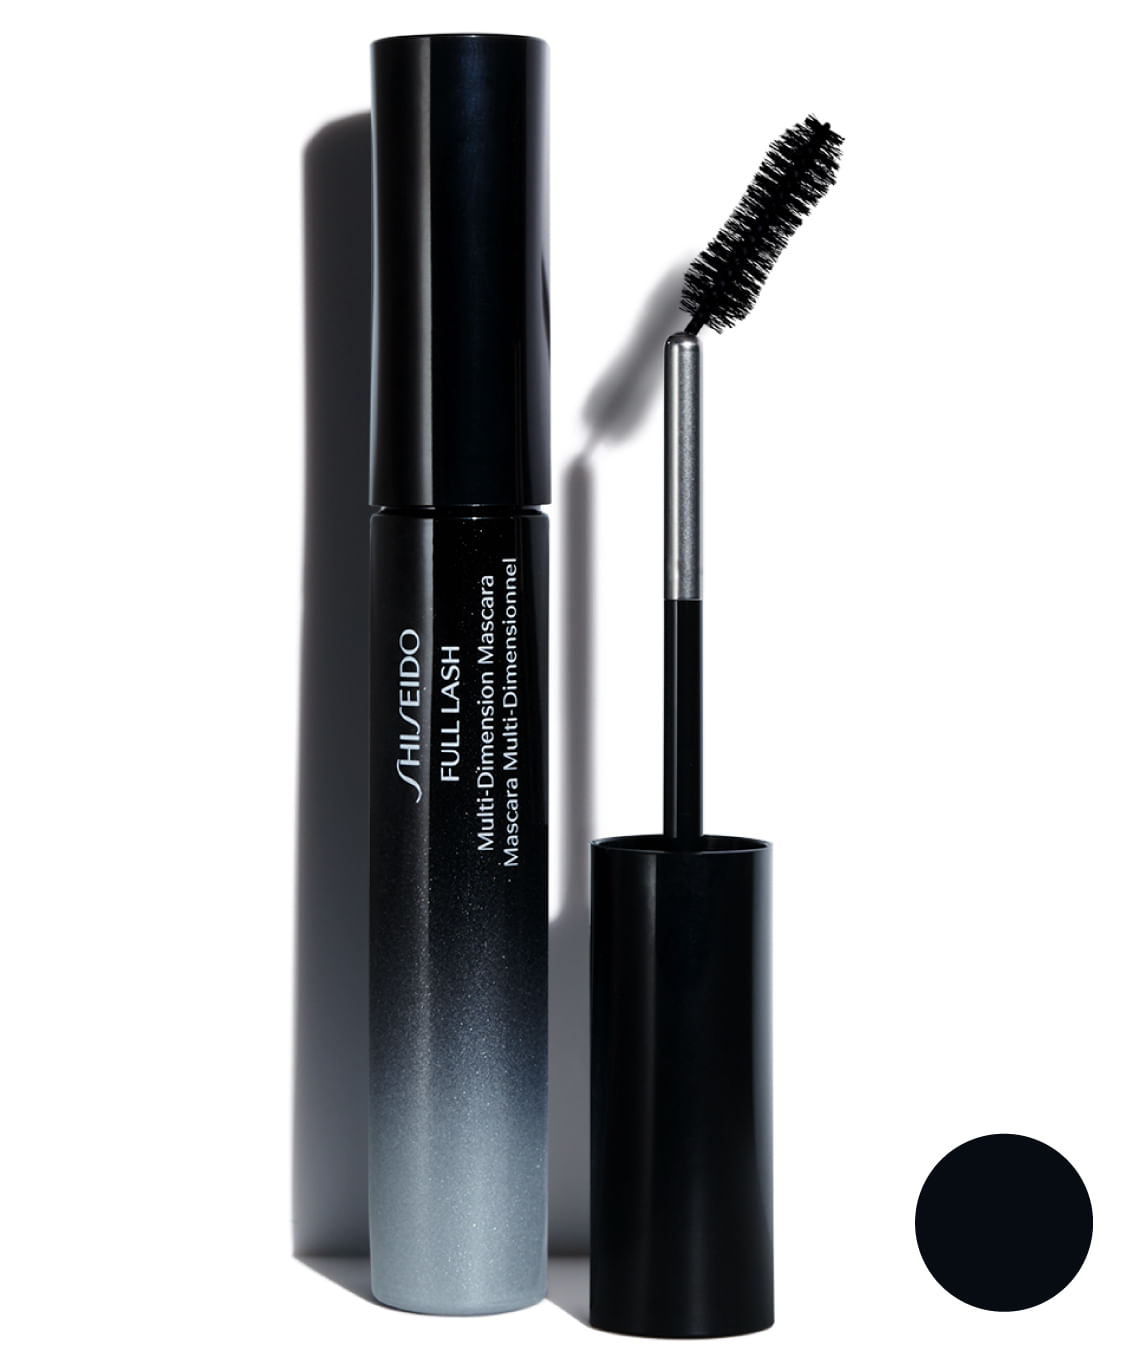 Pestañina Full Lash Multi Dimension Mascara 901 Negro 8 ml